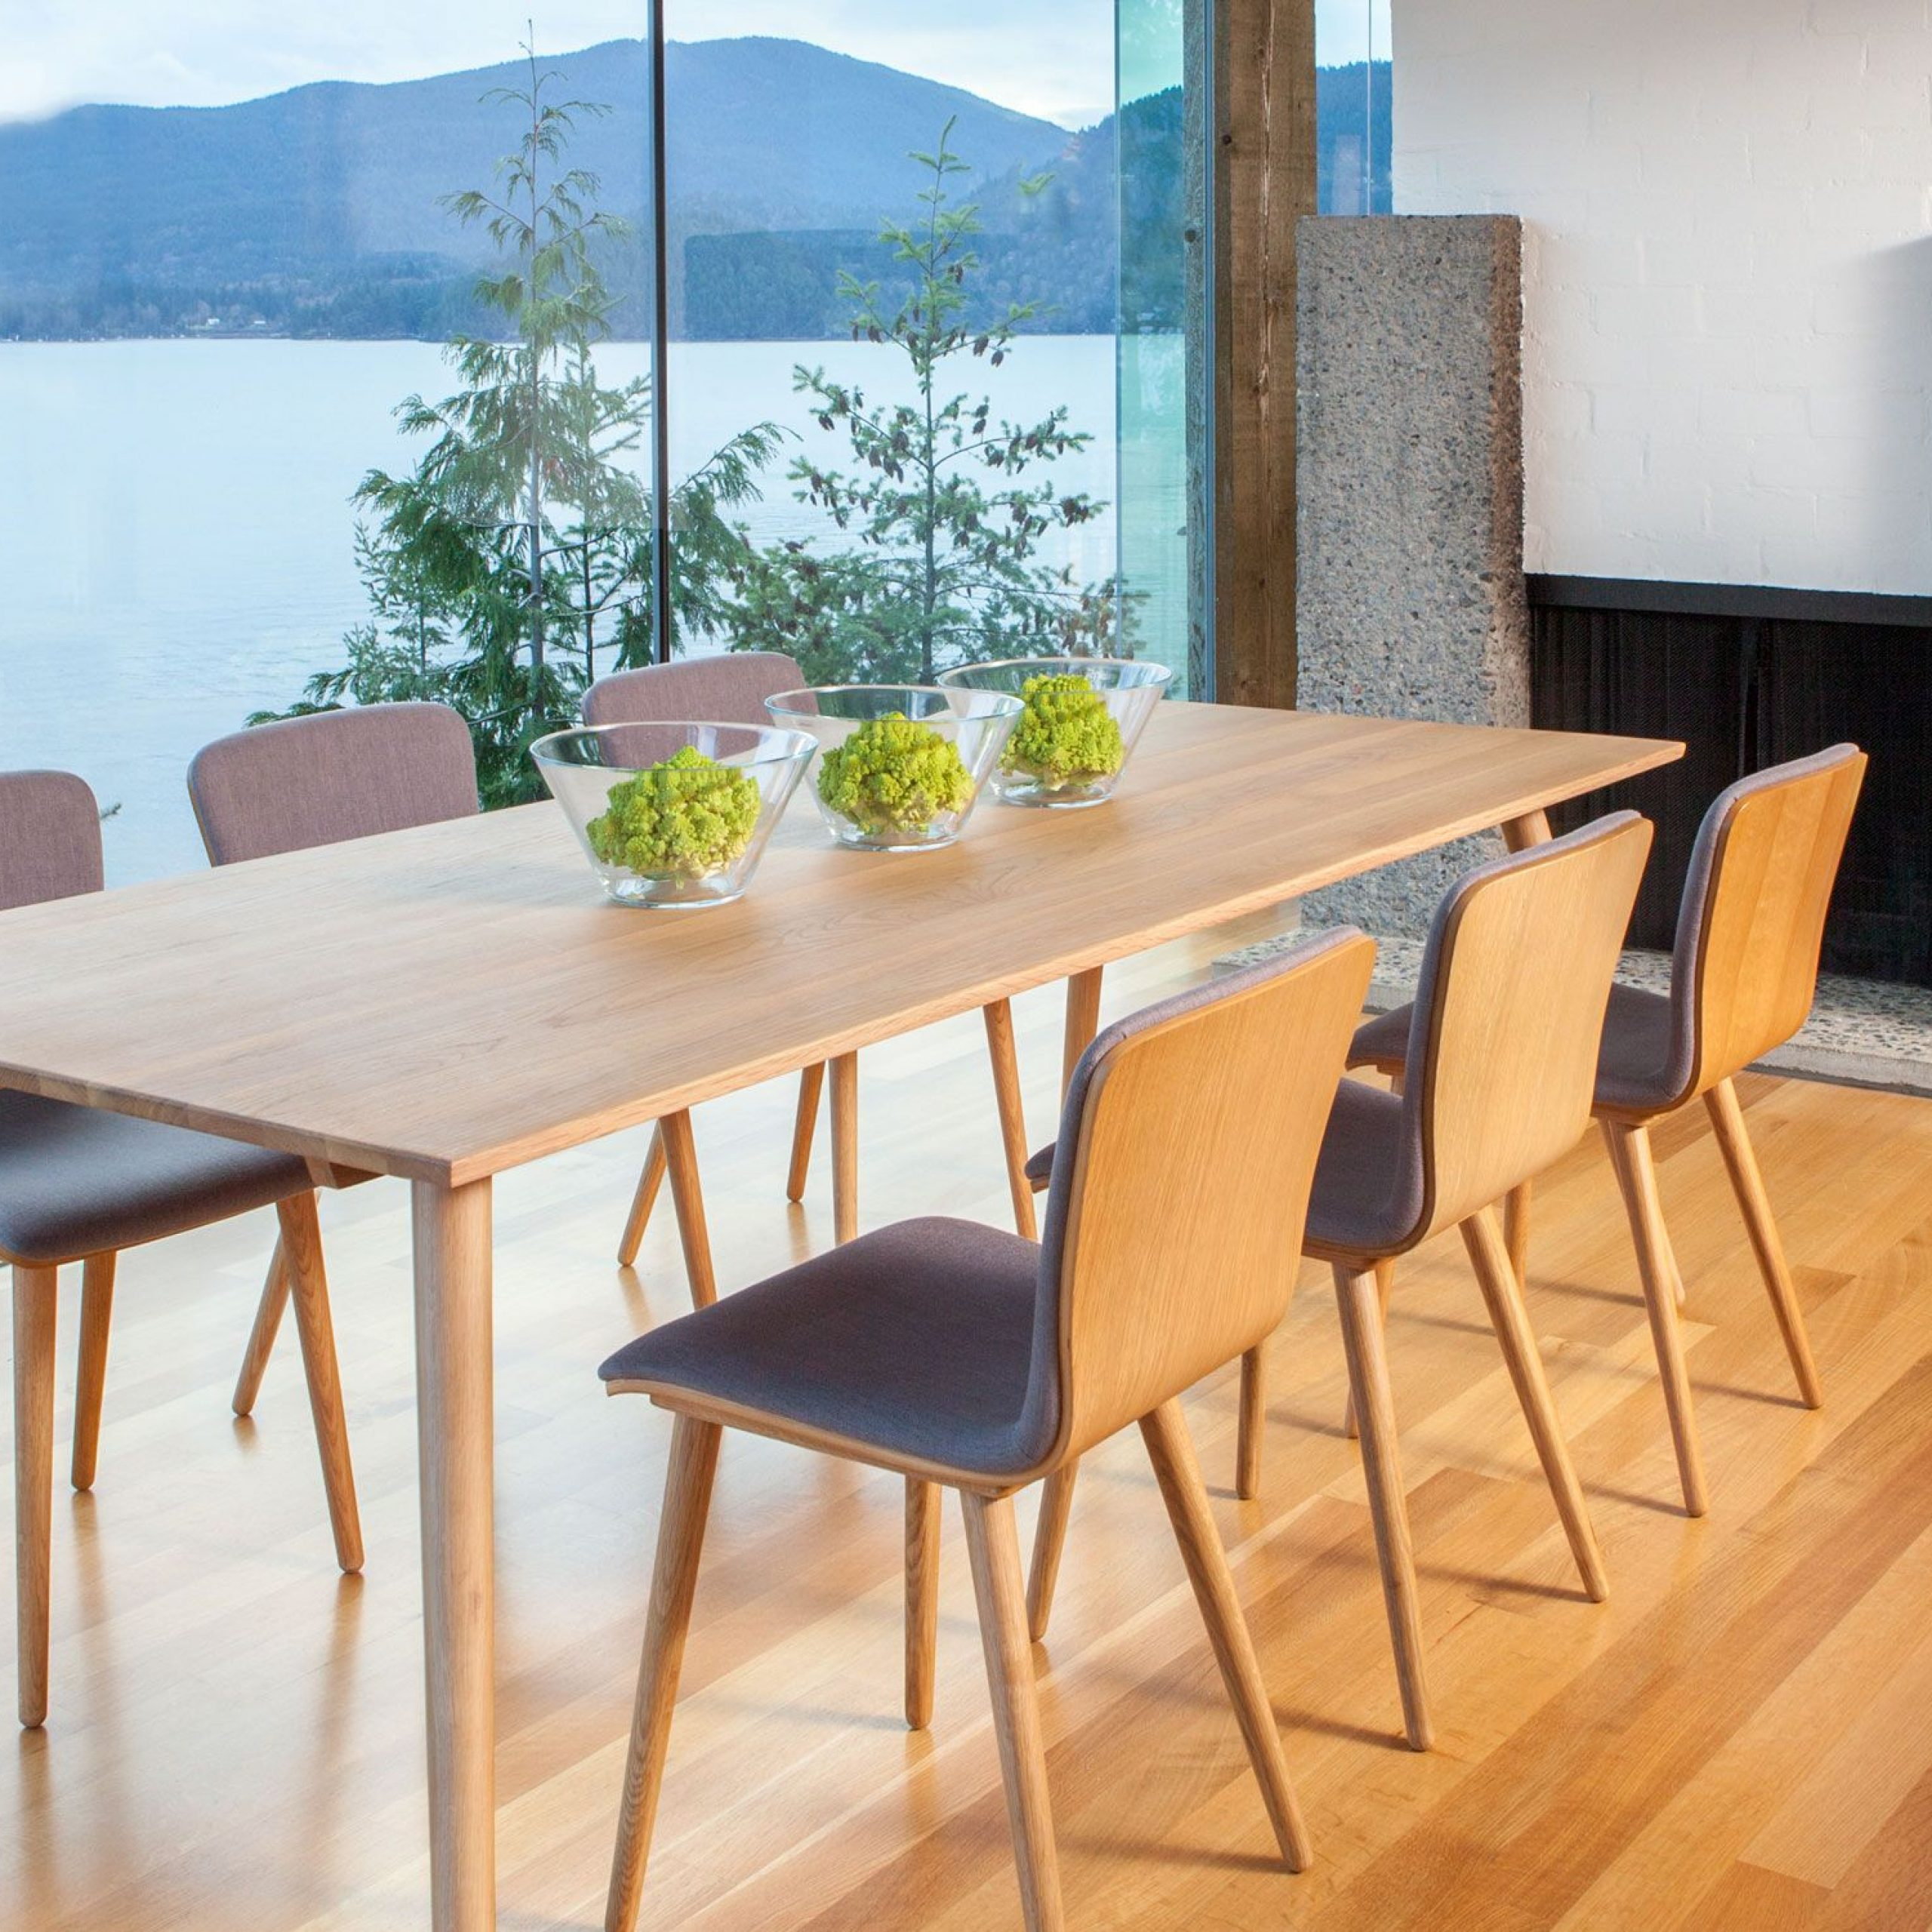 Favorite Pin On Dining Table Intended For Rustic Mid Century Modern 6 Seating Dining Tables In White And Natural Wood (View 5 of 30)